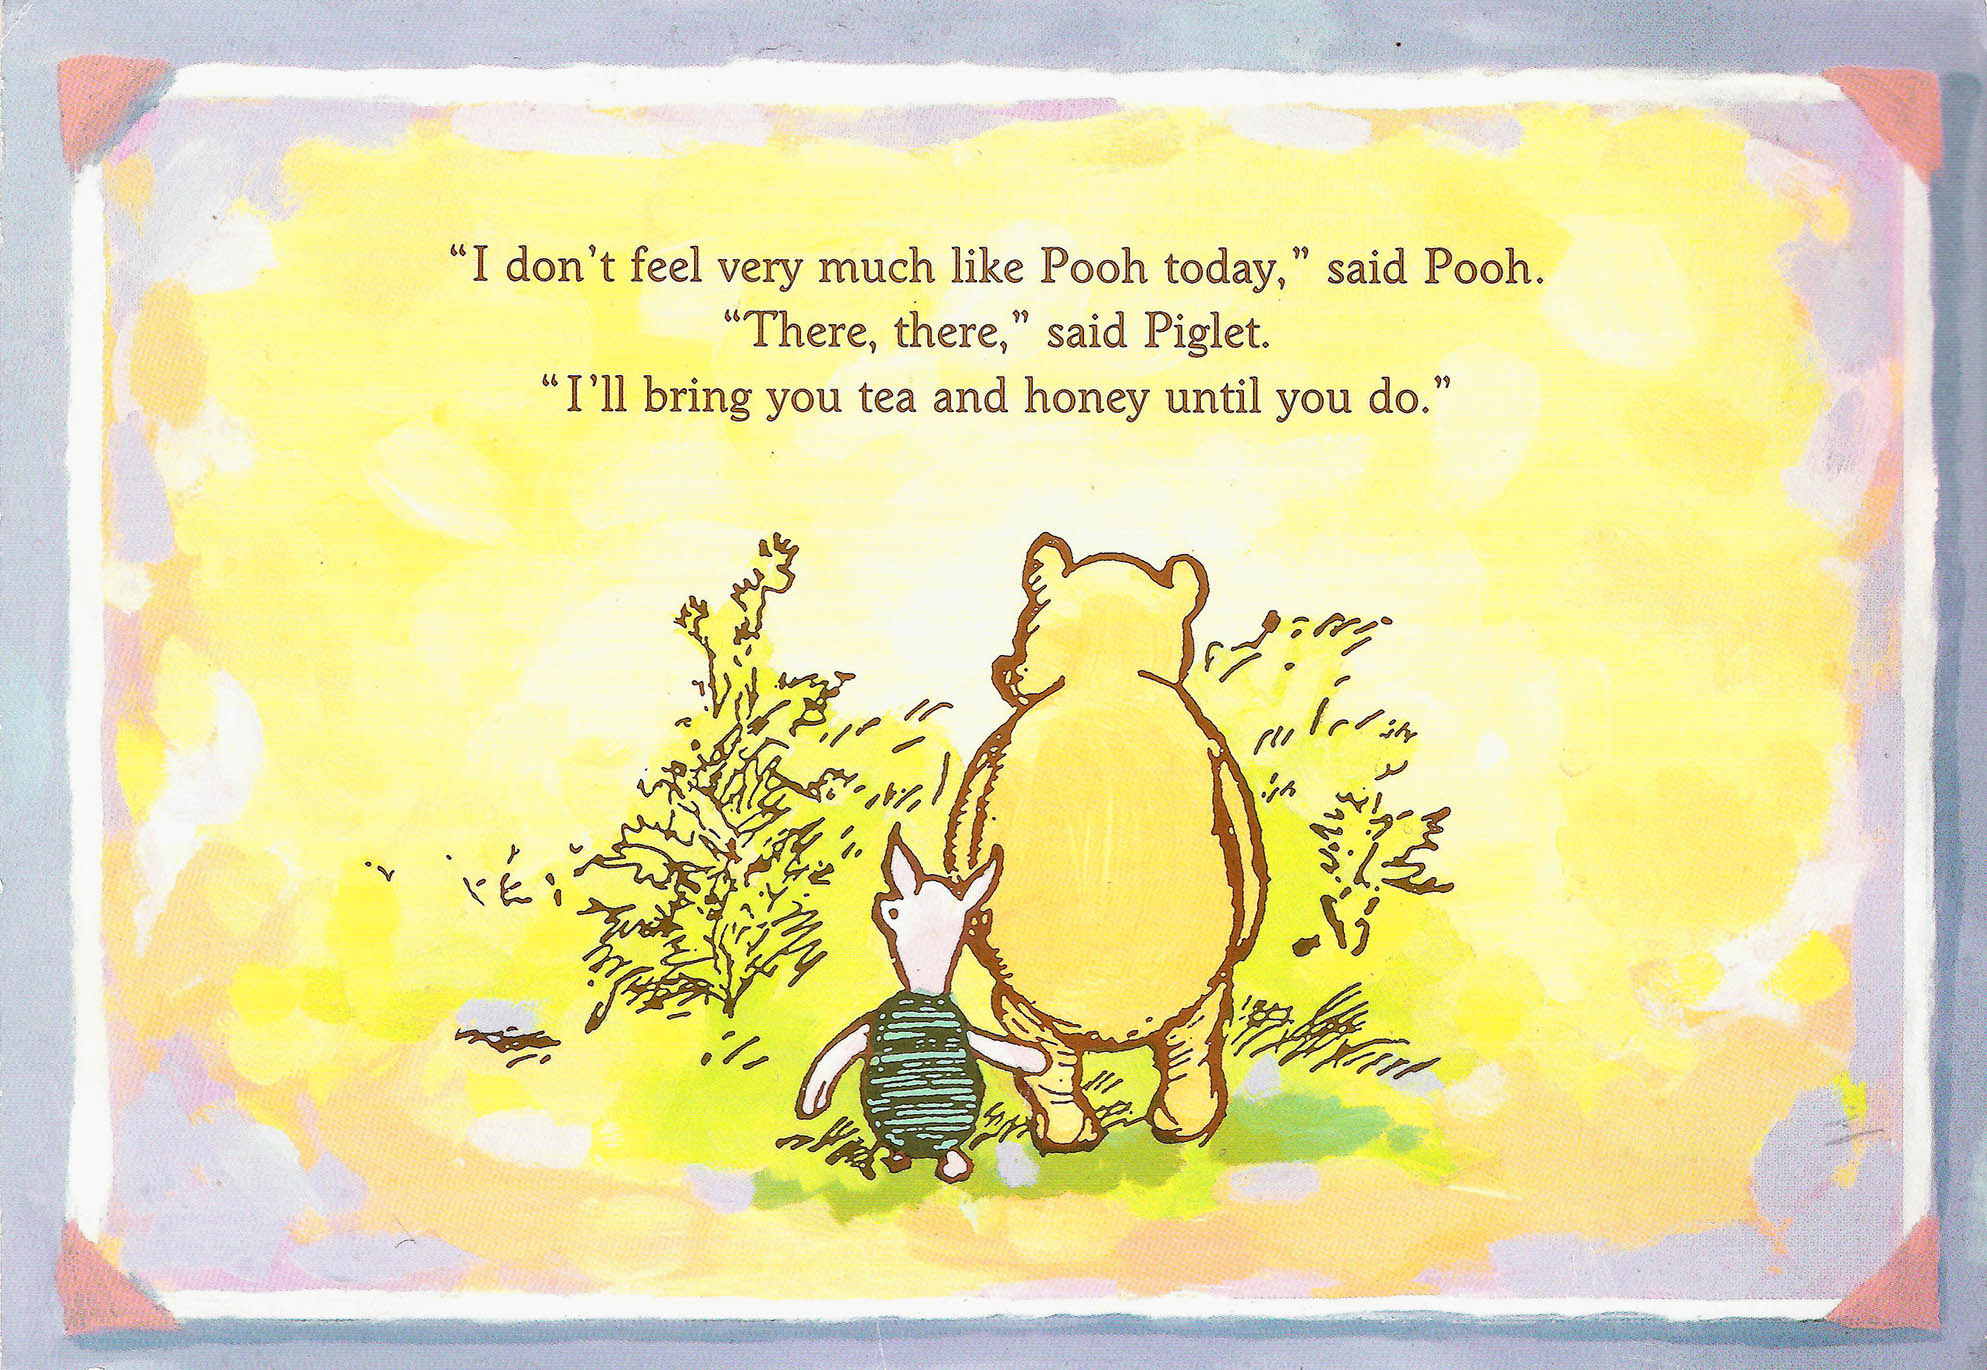 Winnie The Pooh Quotes: A Pondering Post From The Hundred Acre Woods